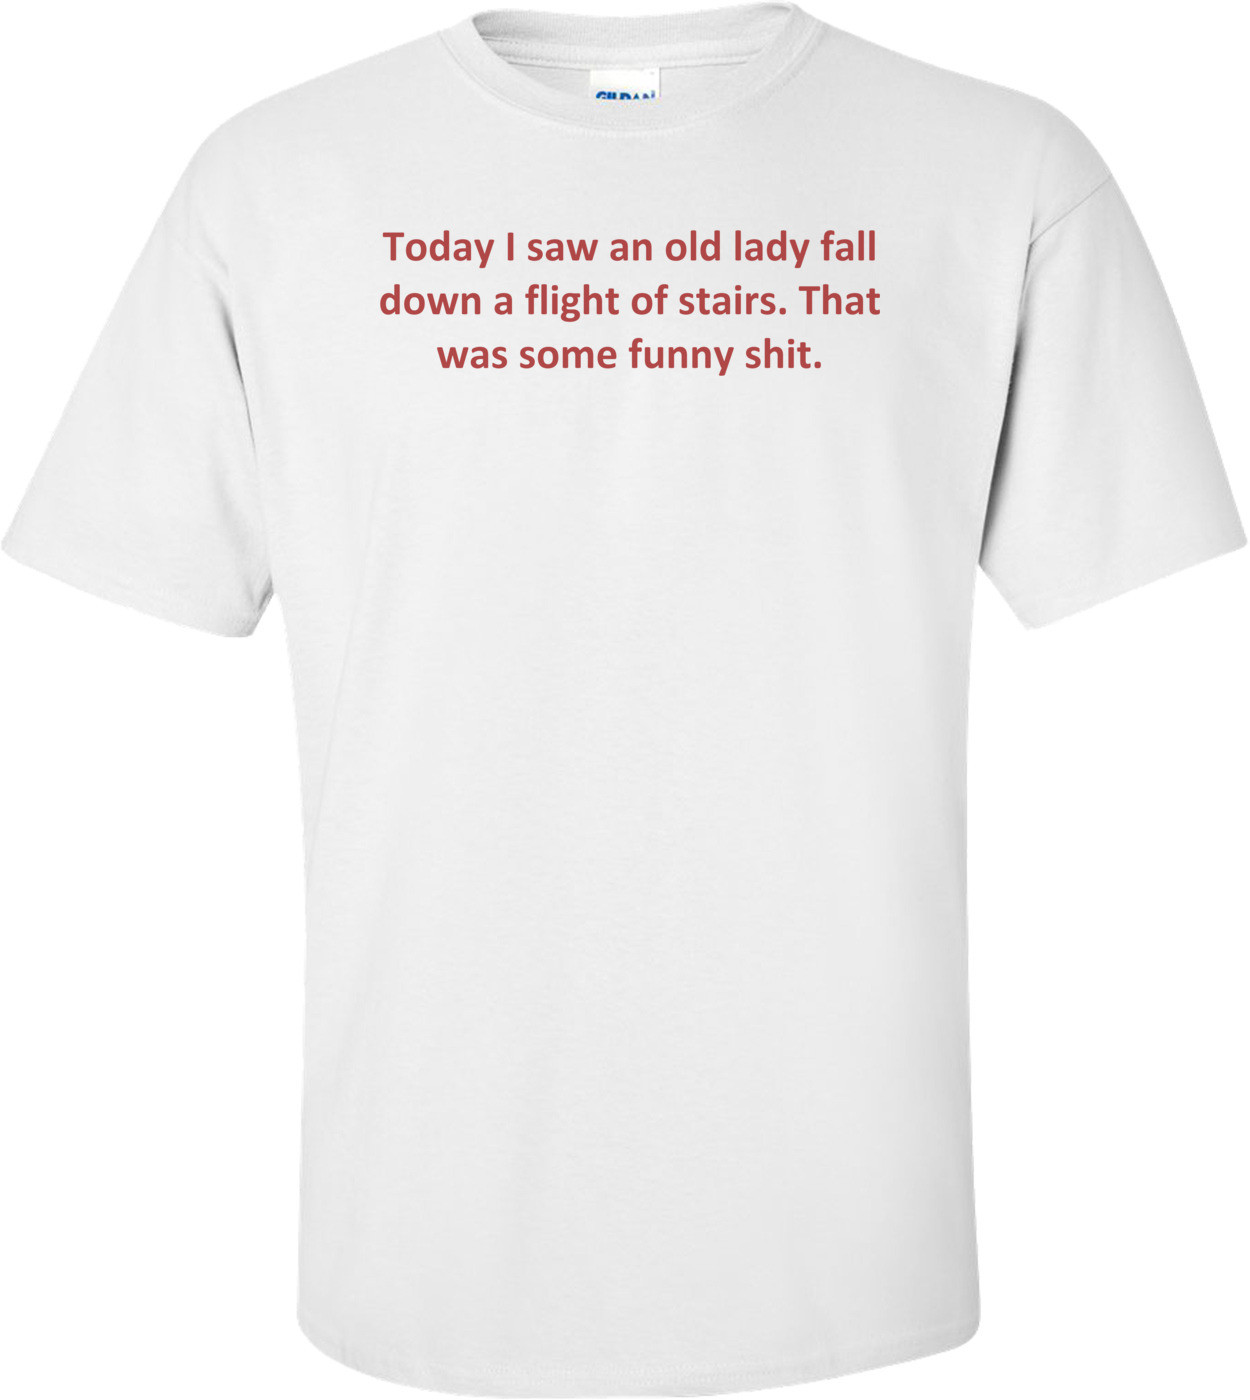 Today I saw an old lady fall down a flight of stairs. That was some funny shit. Shirt